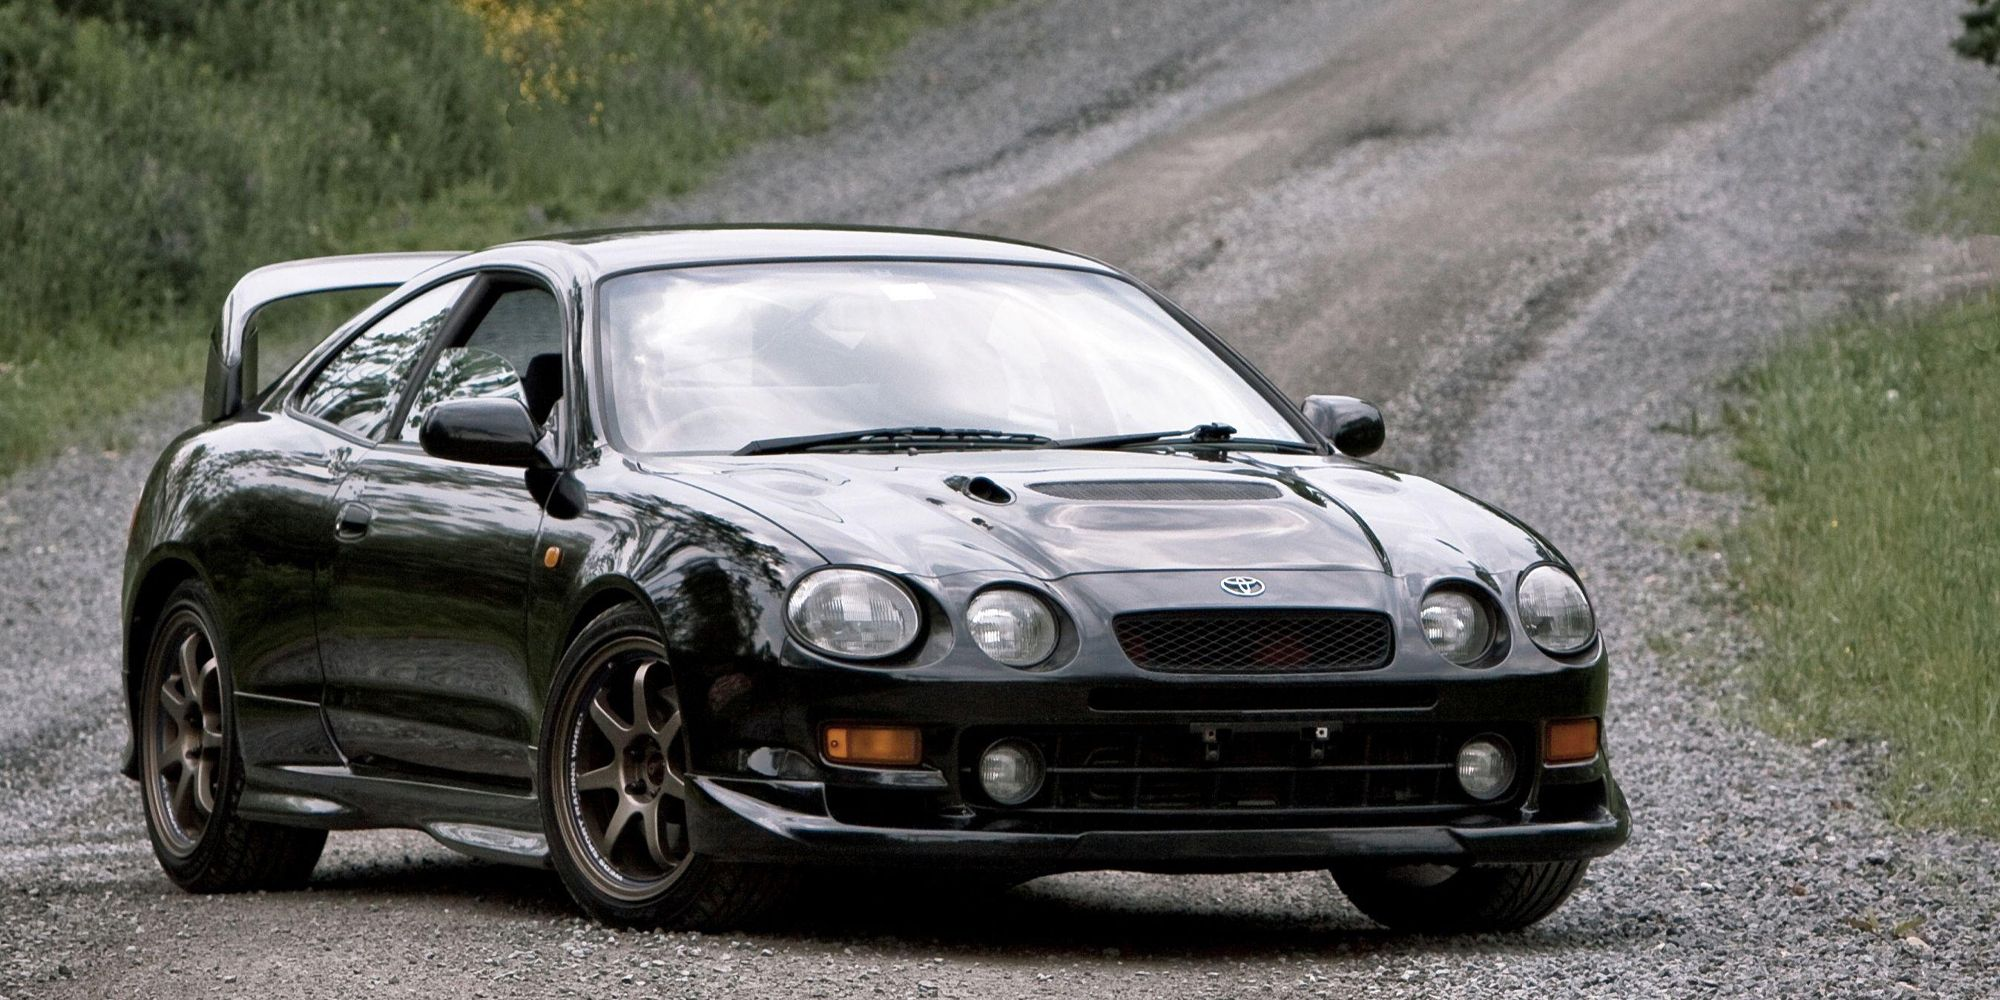 The Most Insane Cars of Young Hollywood | RepairSmith Blog